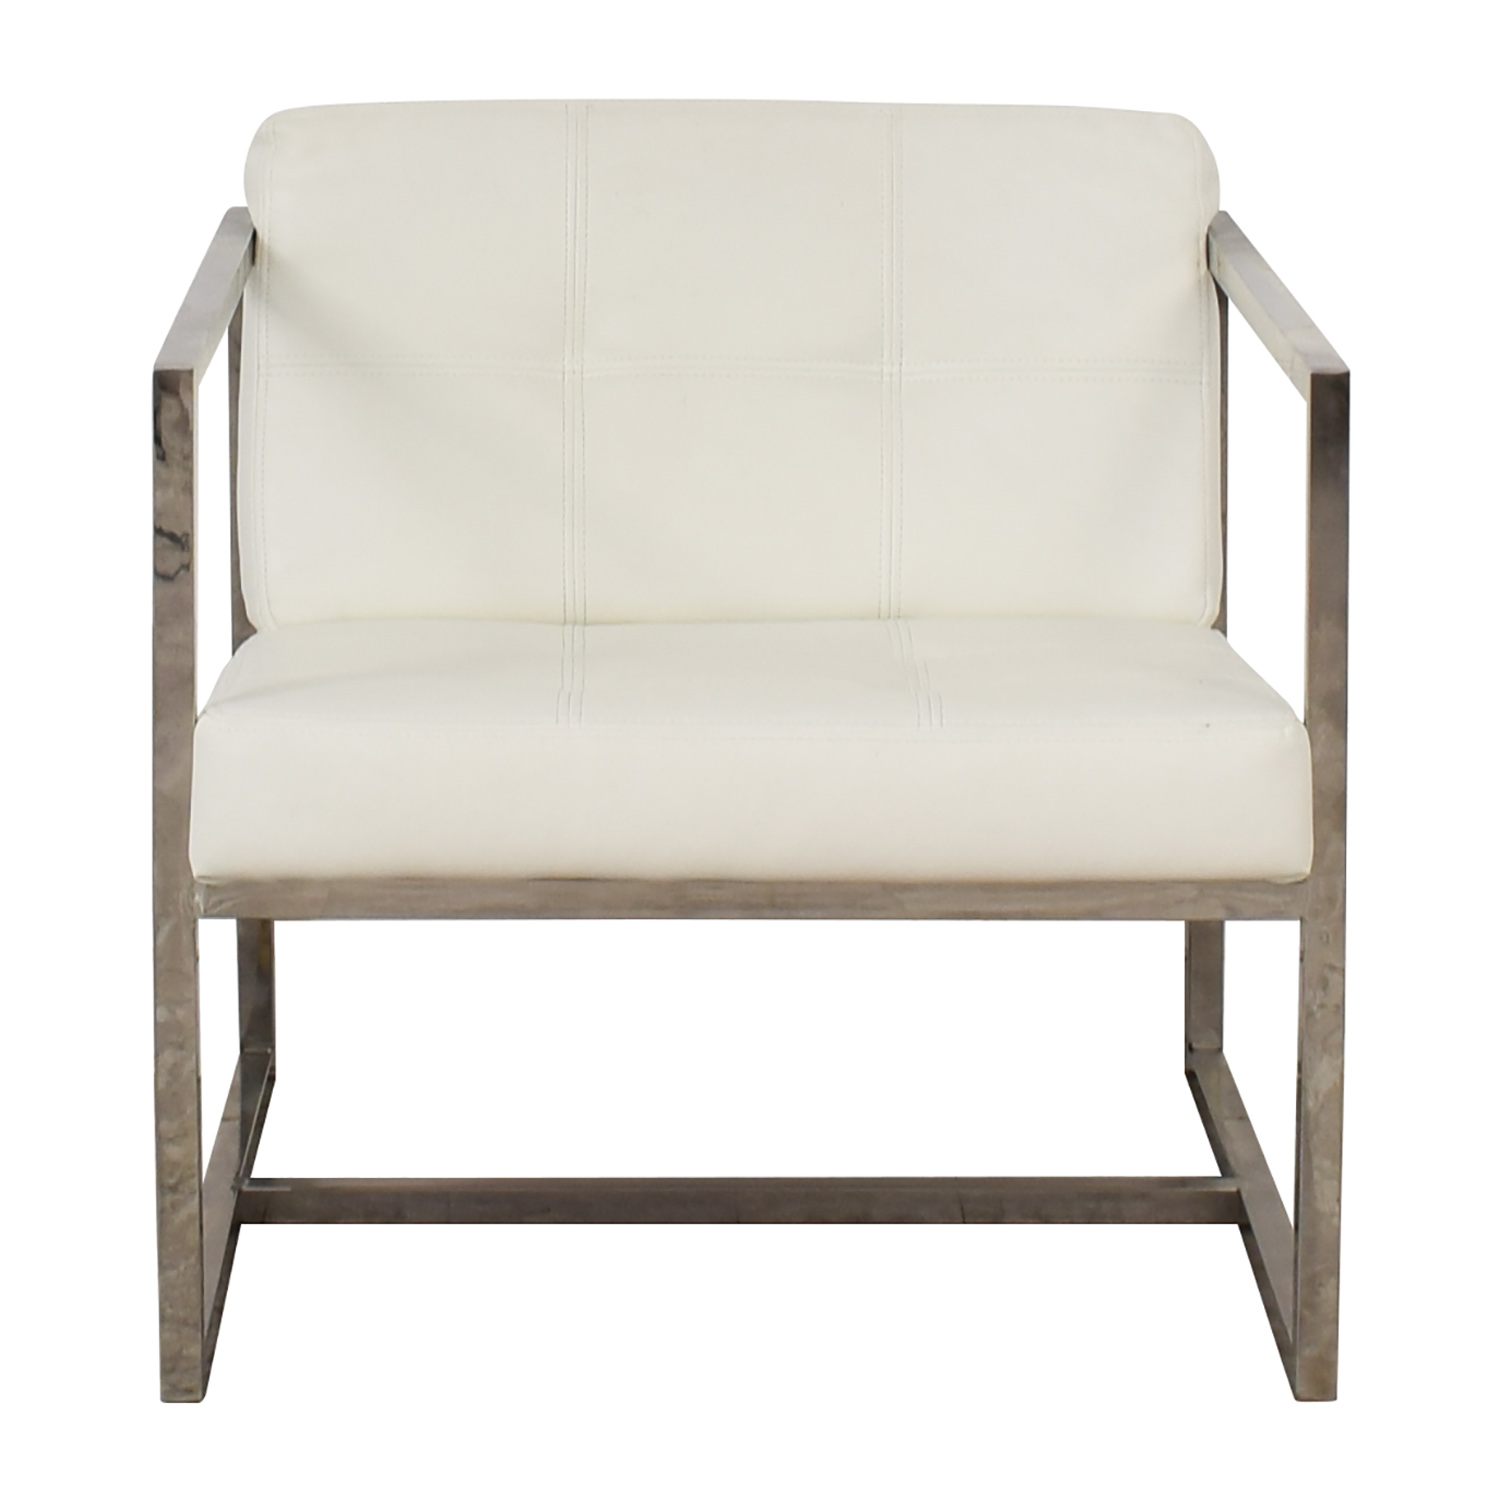 Modway Modway Hover White Lounge Chair on sale